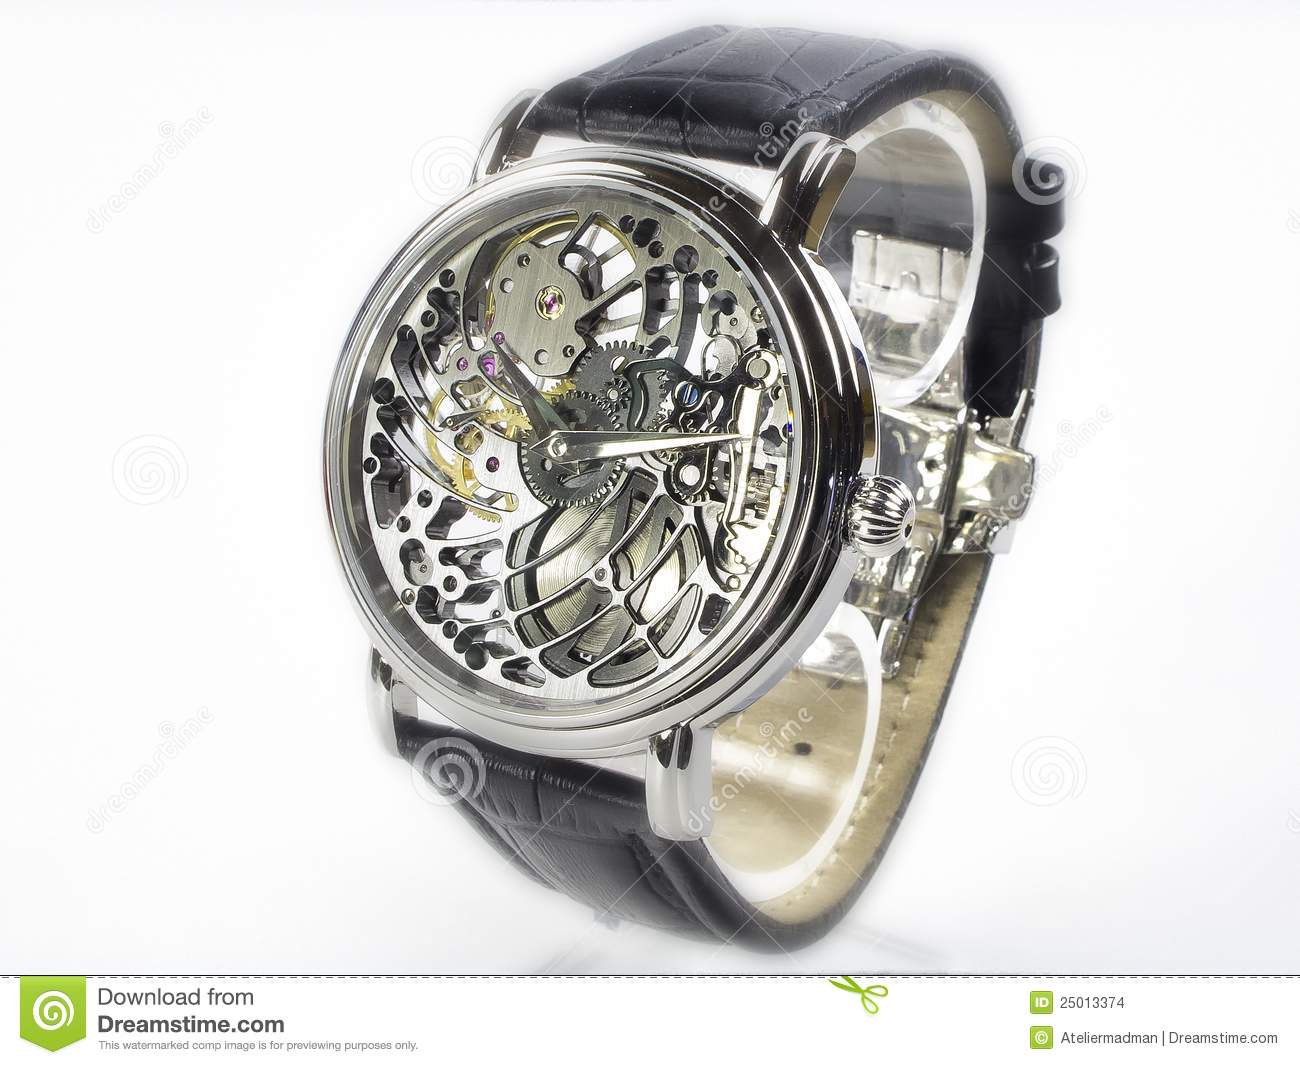 Buy Certified Pre-Owned Watches for Sale, Luxury Watches ...